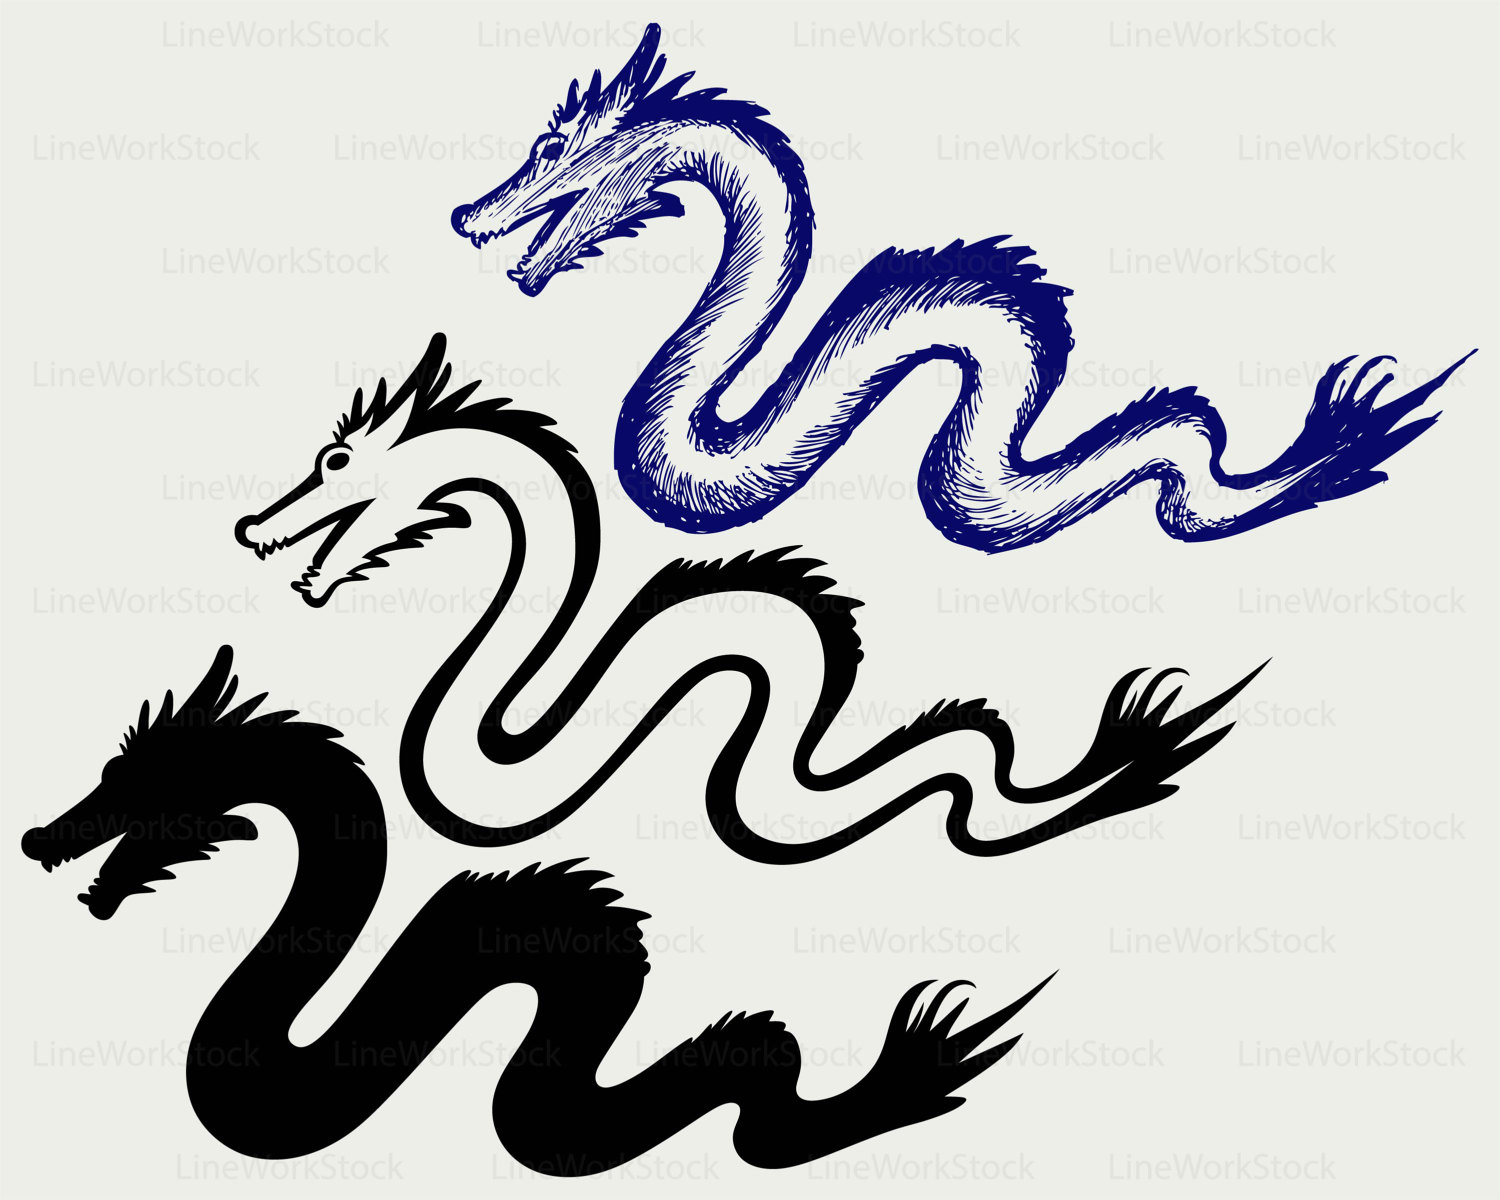 1500x1200 Chinese Dragon Svg,dragon Clipart,snake Svg,dragon Silhouette